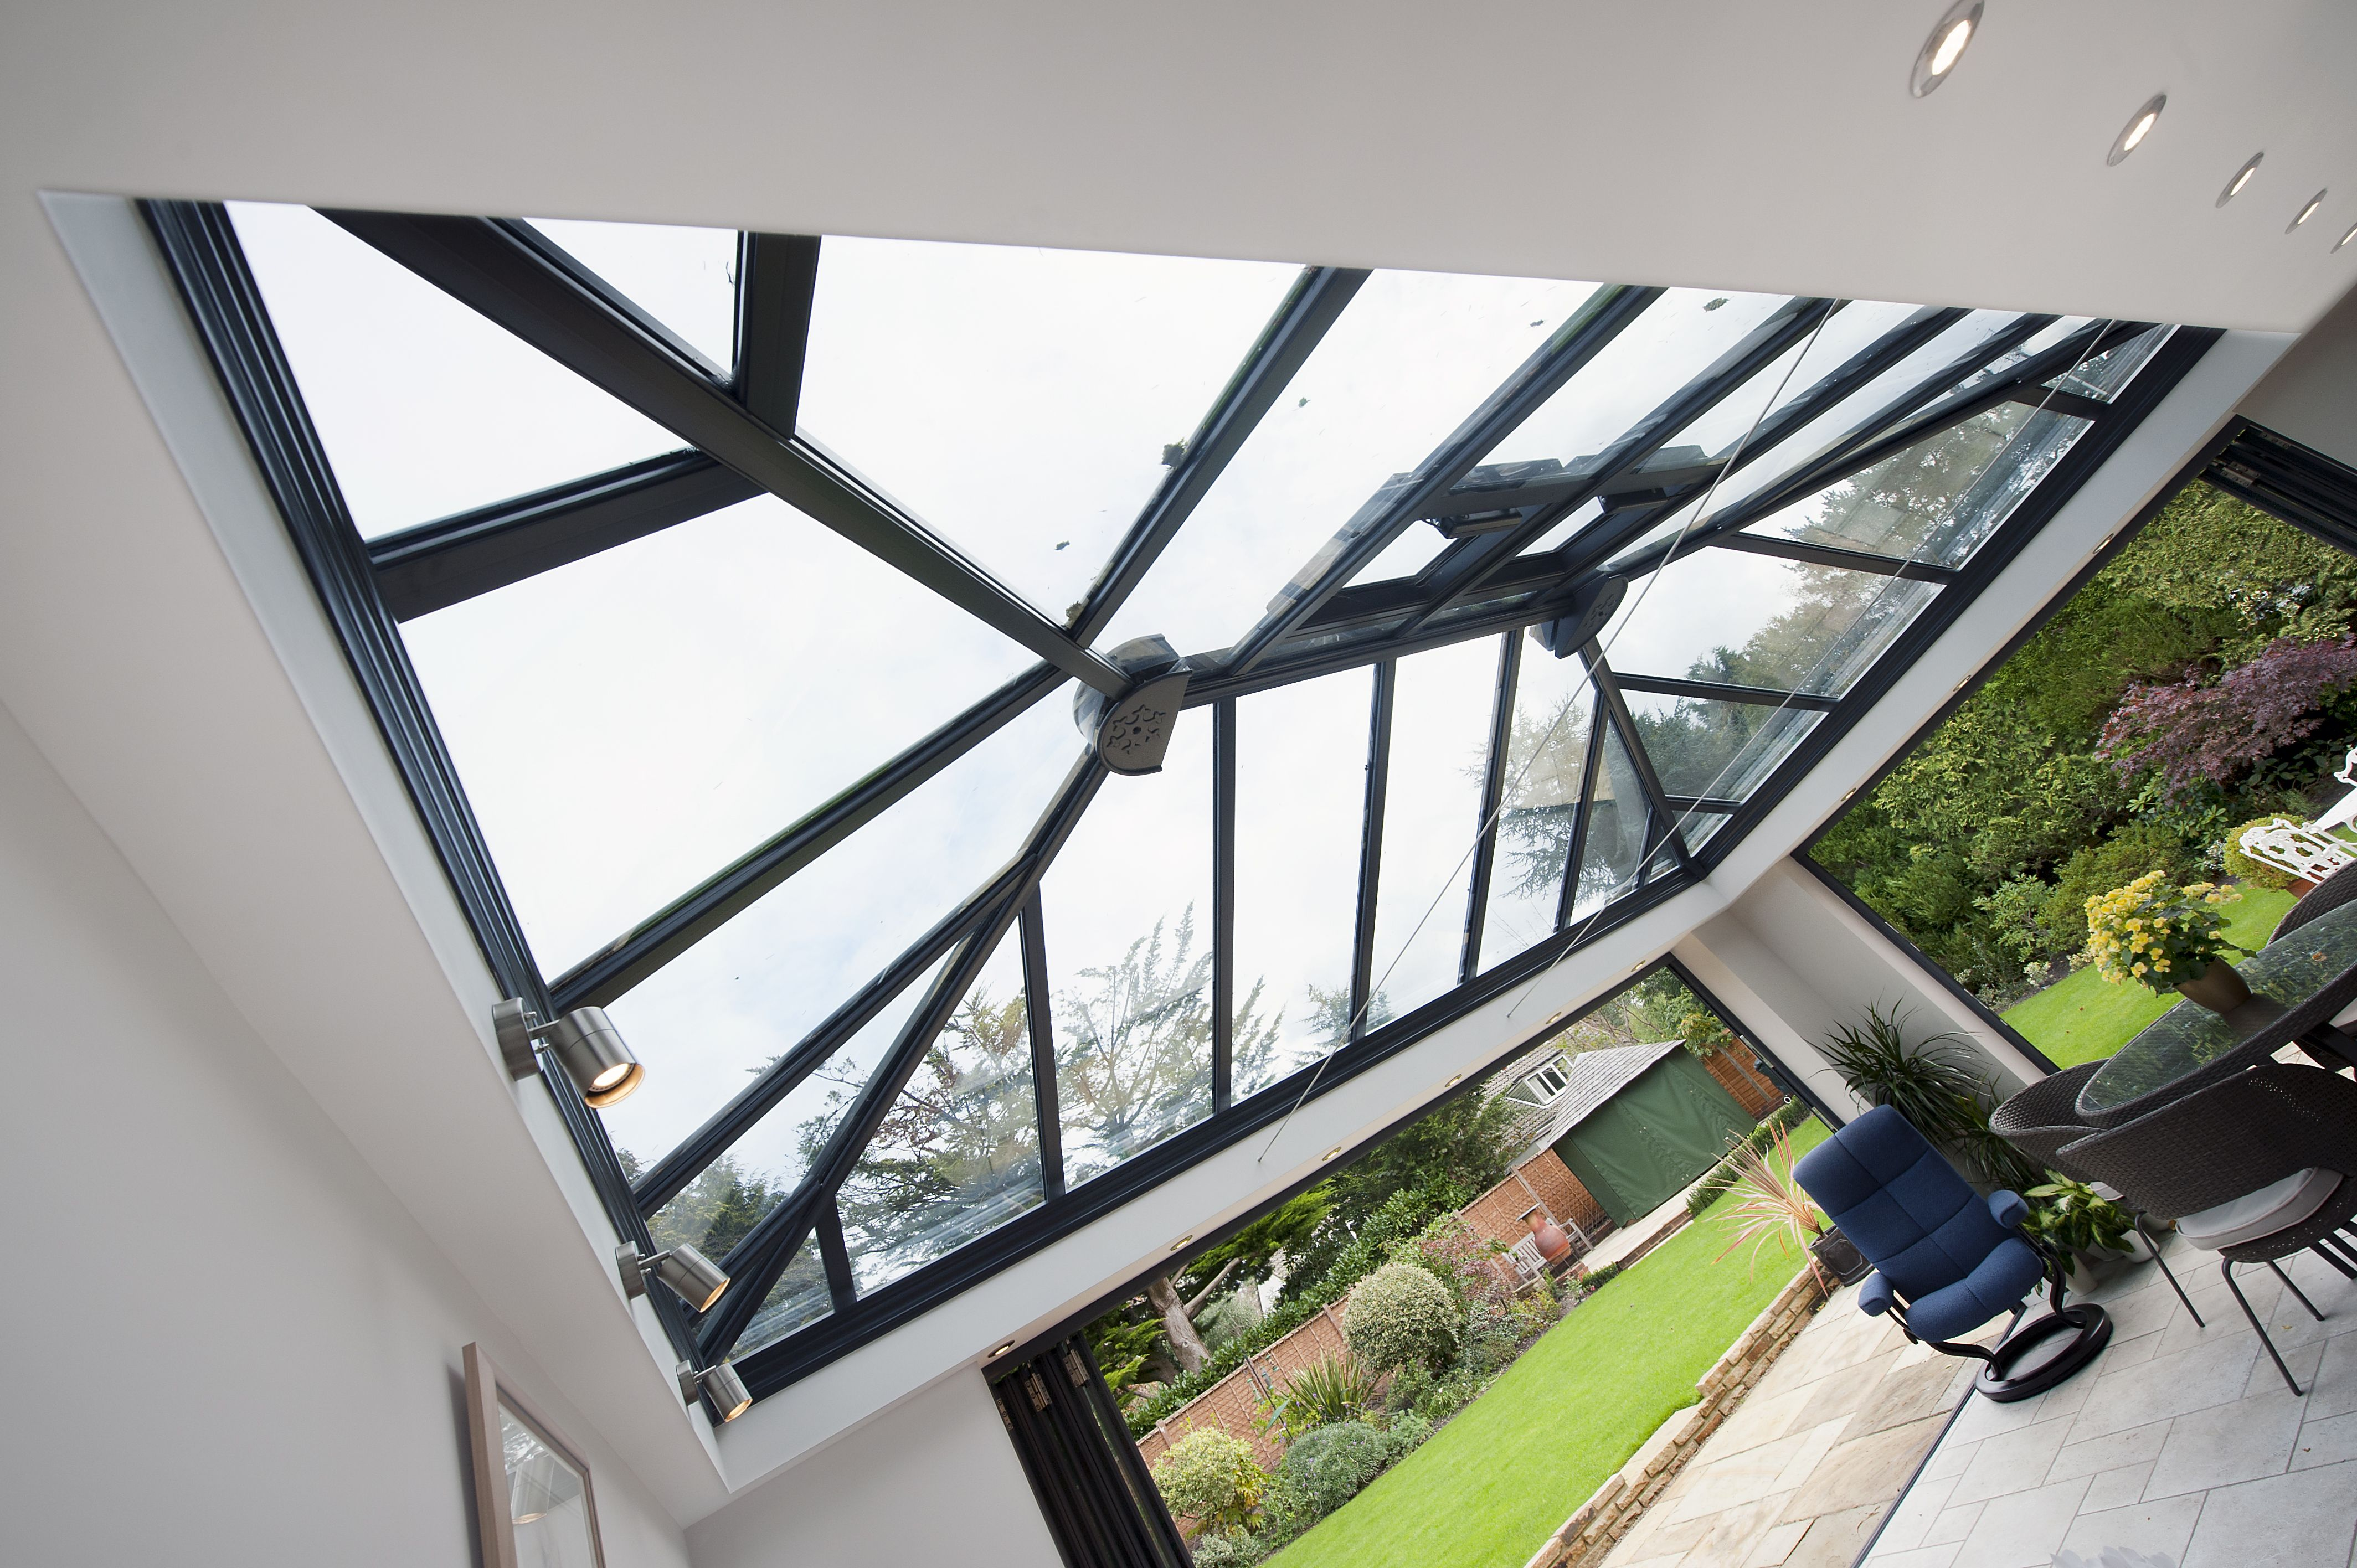 This Garden Room Benefits From The Fitting Of Modern Tie Wires Instead Of The Traditional Bulky Tie Bars Seen In So Many Of T Garden Room Bifold Doors Ferndown